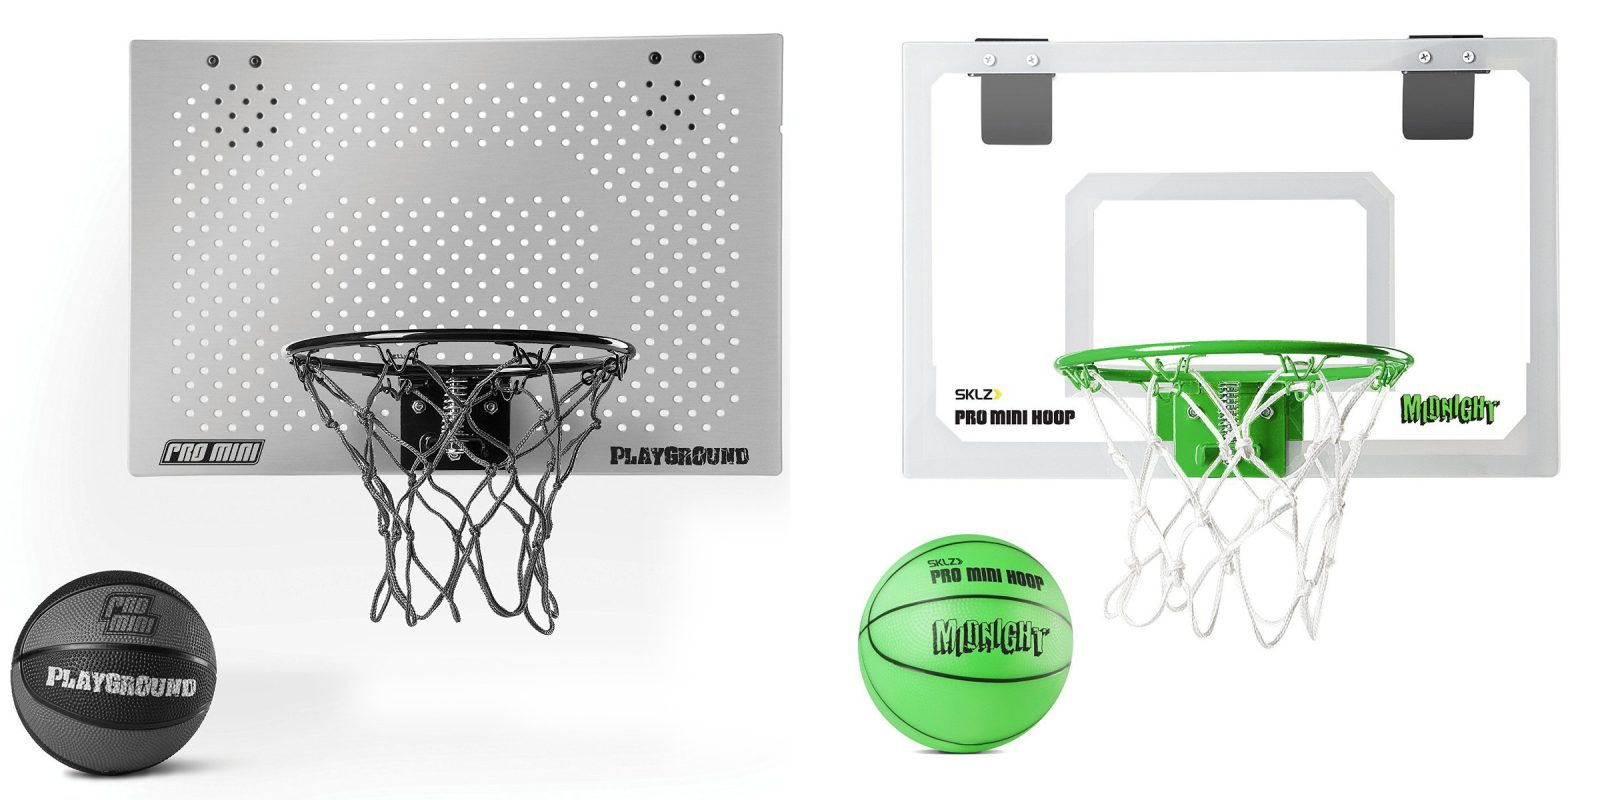 b7ec5beeb5c Amazon Gold Box – up to 50% off SKLZ Pro Mini Basketball Hoops starting  from  15 Prime shipped (Orig. up to  44)